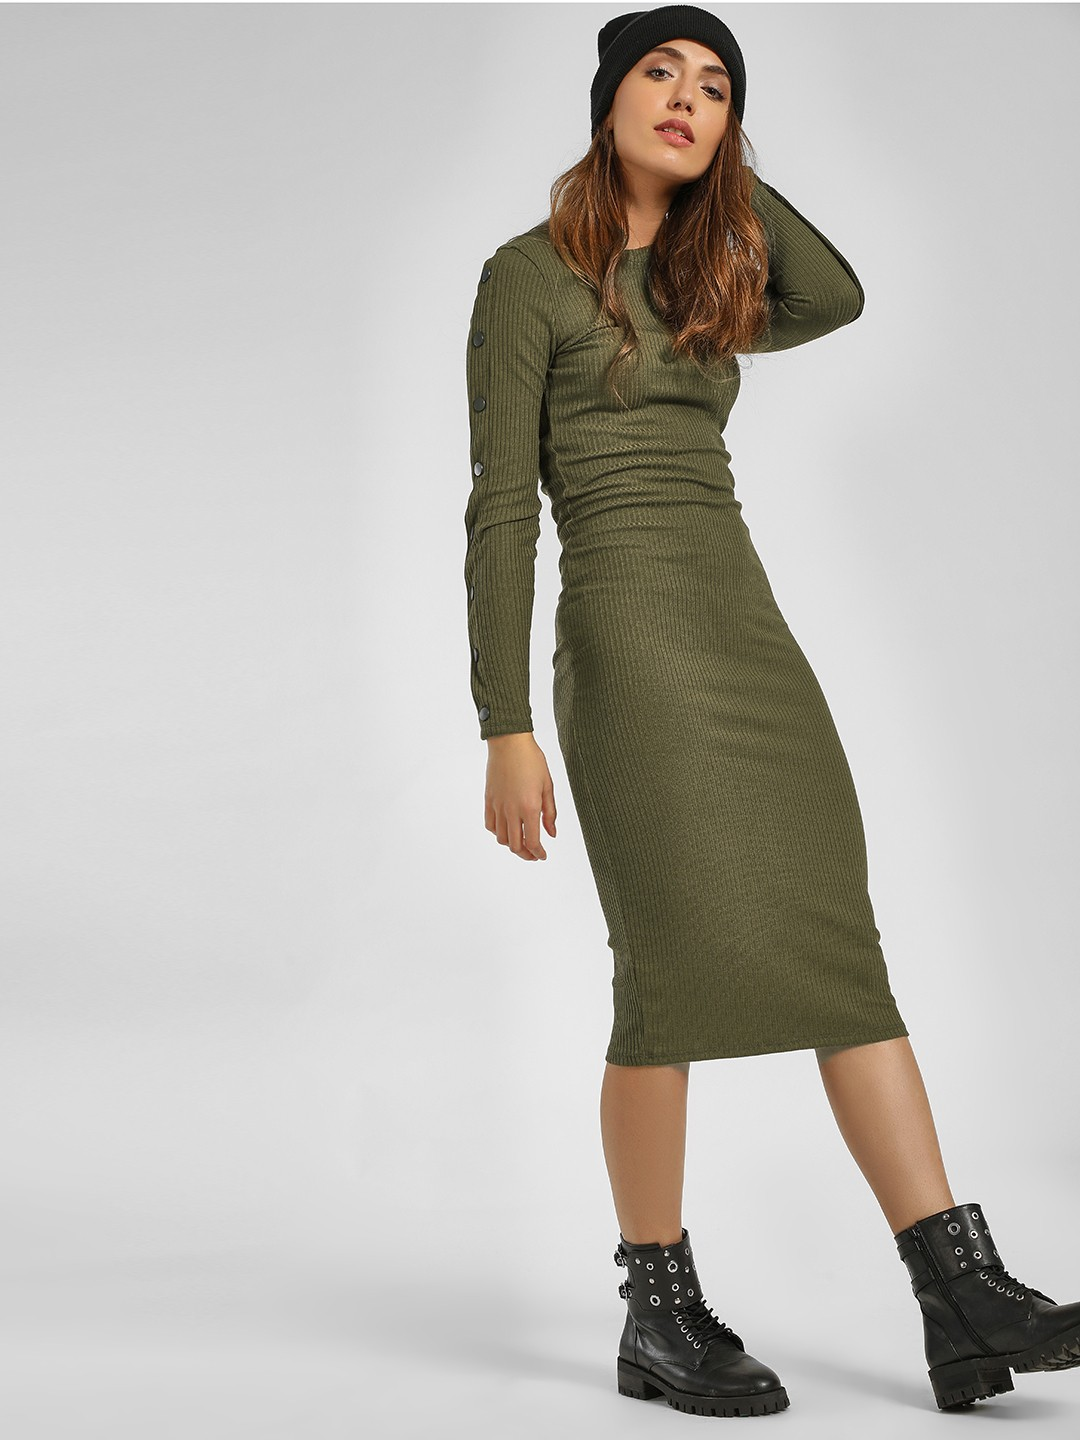 New Look dark khaki Buttoned Sleeve Ribbed Bodycon Dress 1